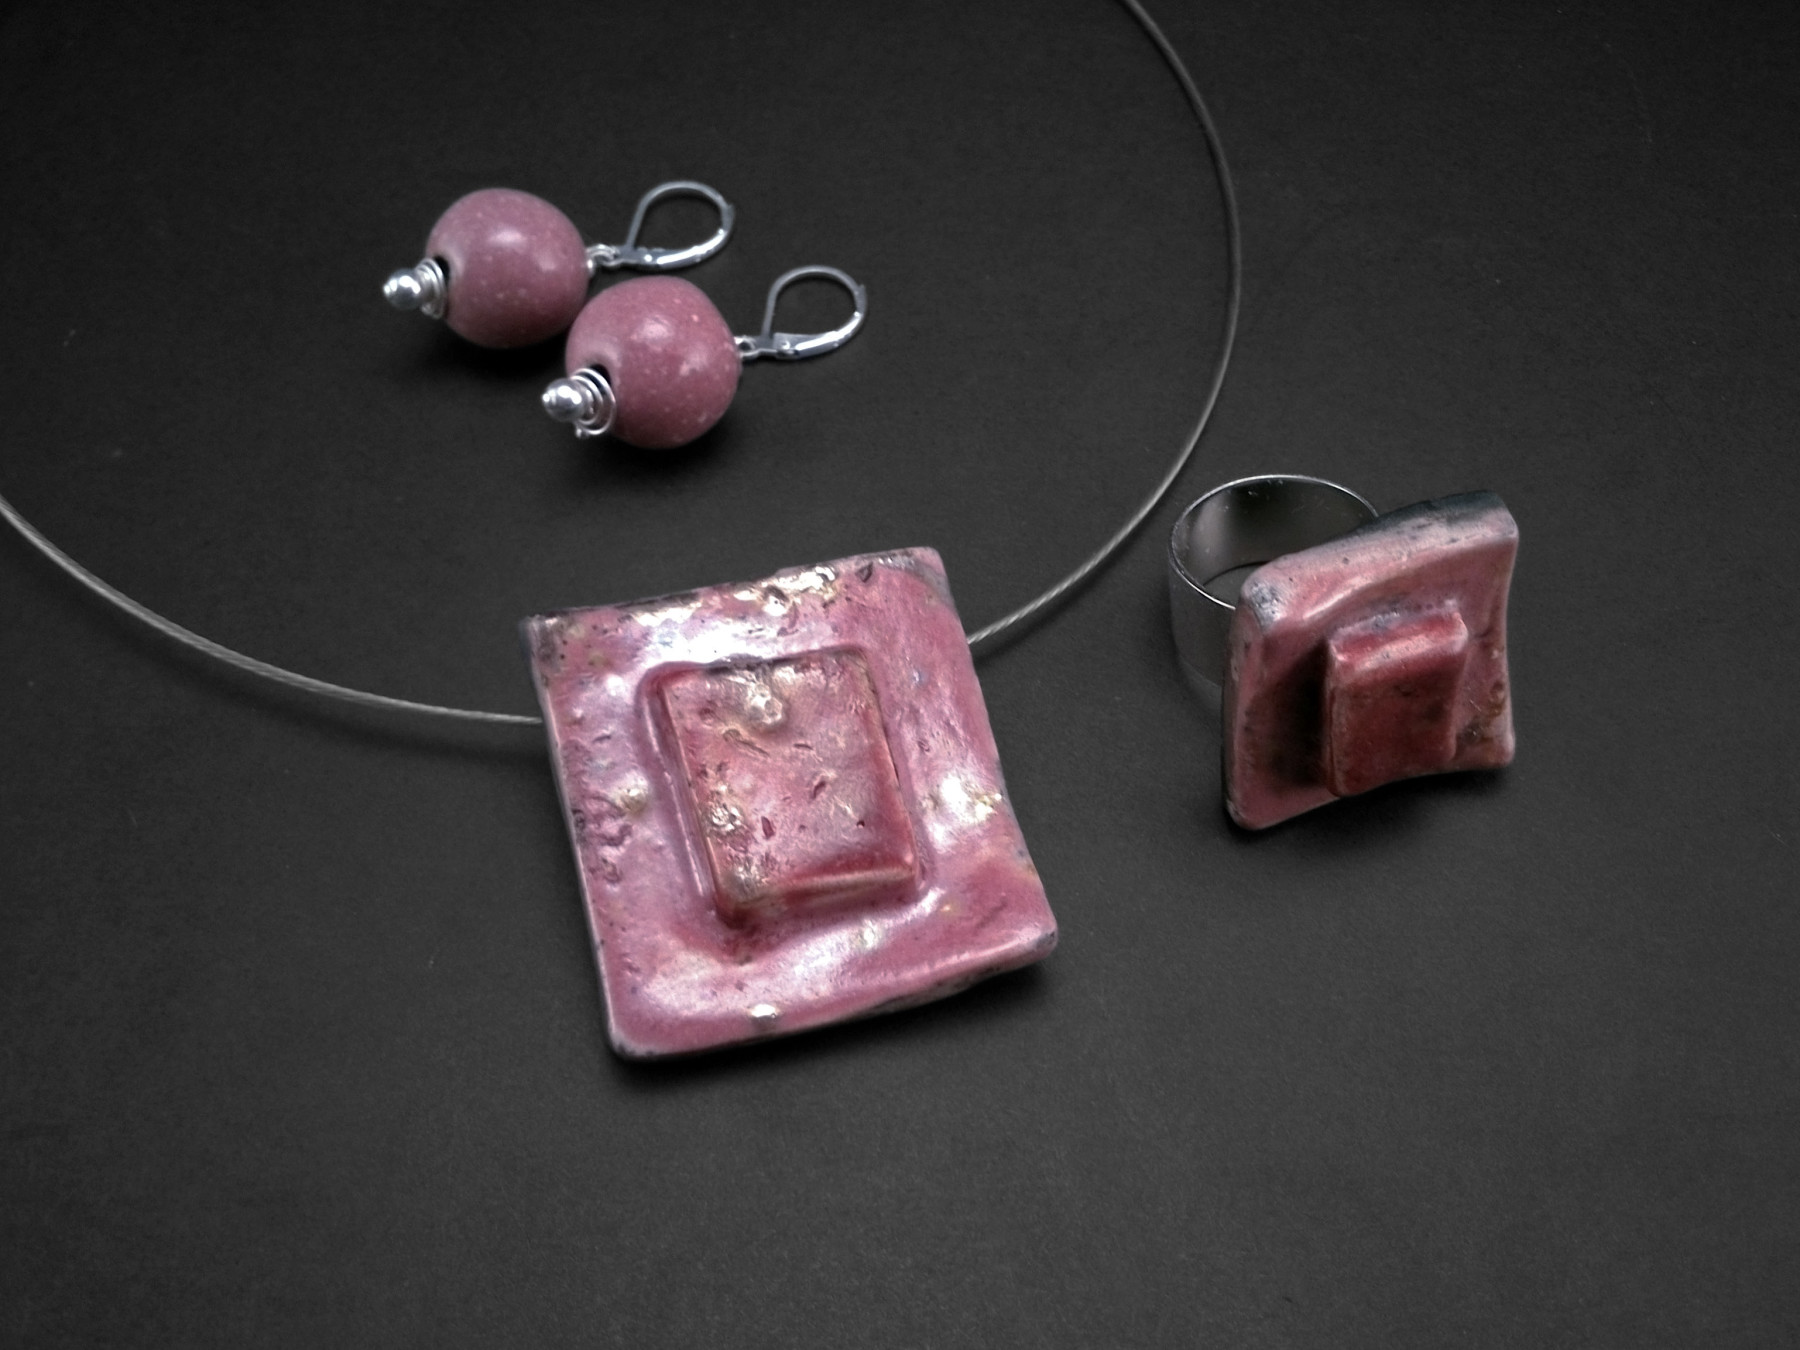 Punch Cake Medal, Ring and Pendants - Ildikó Károlyi